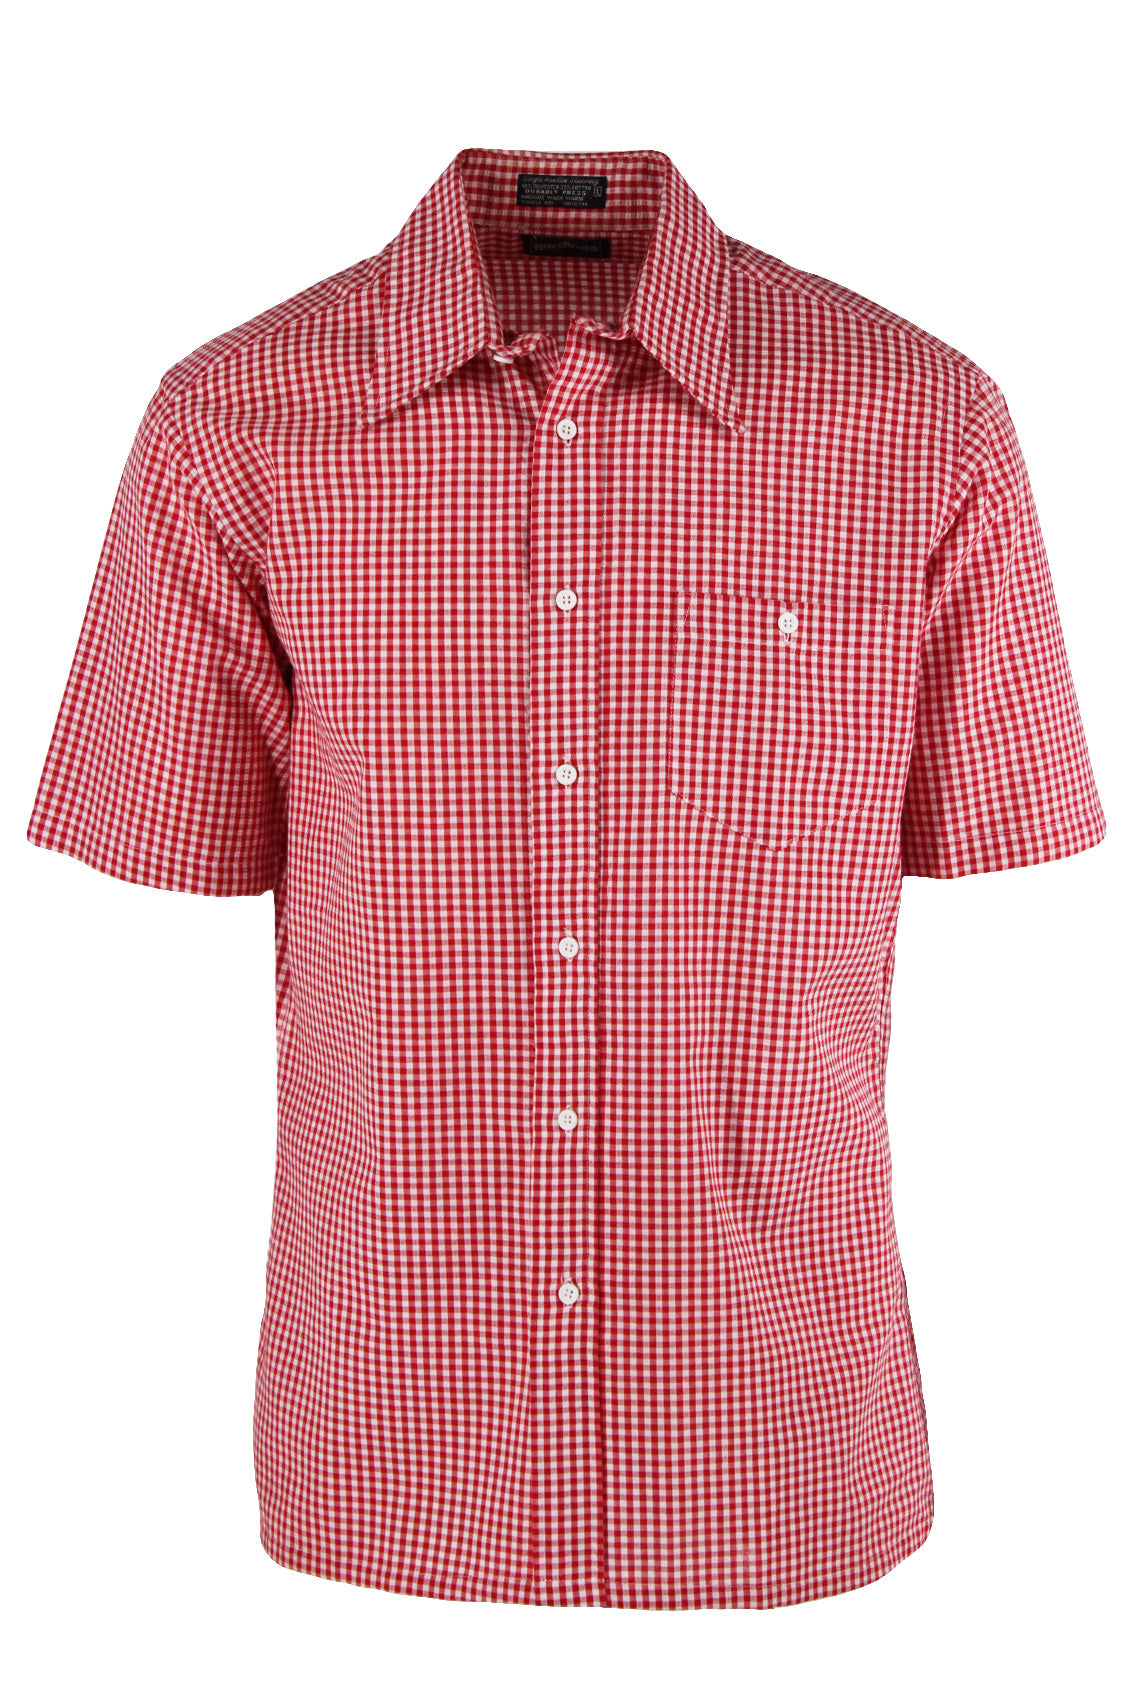 vintage burdines red and white gingham short sleeve button down shirt. features pointed collar and buttoned chest patch pocket in a straight cut.